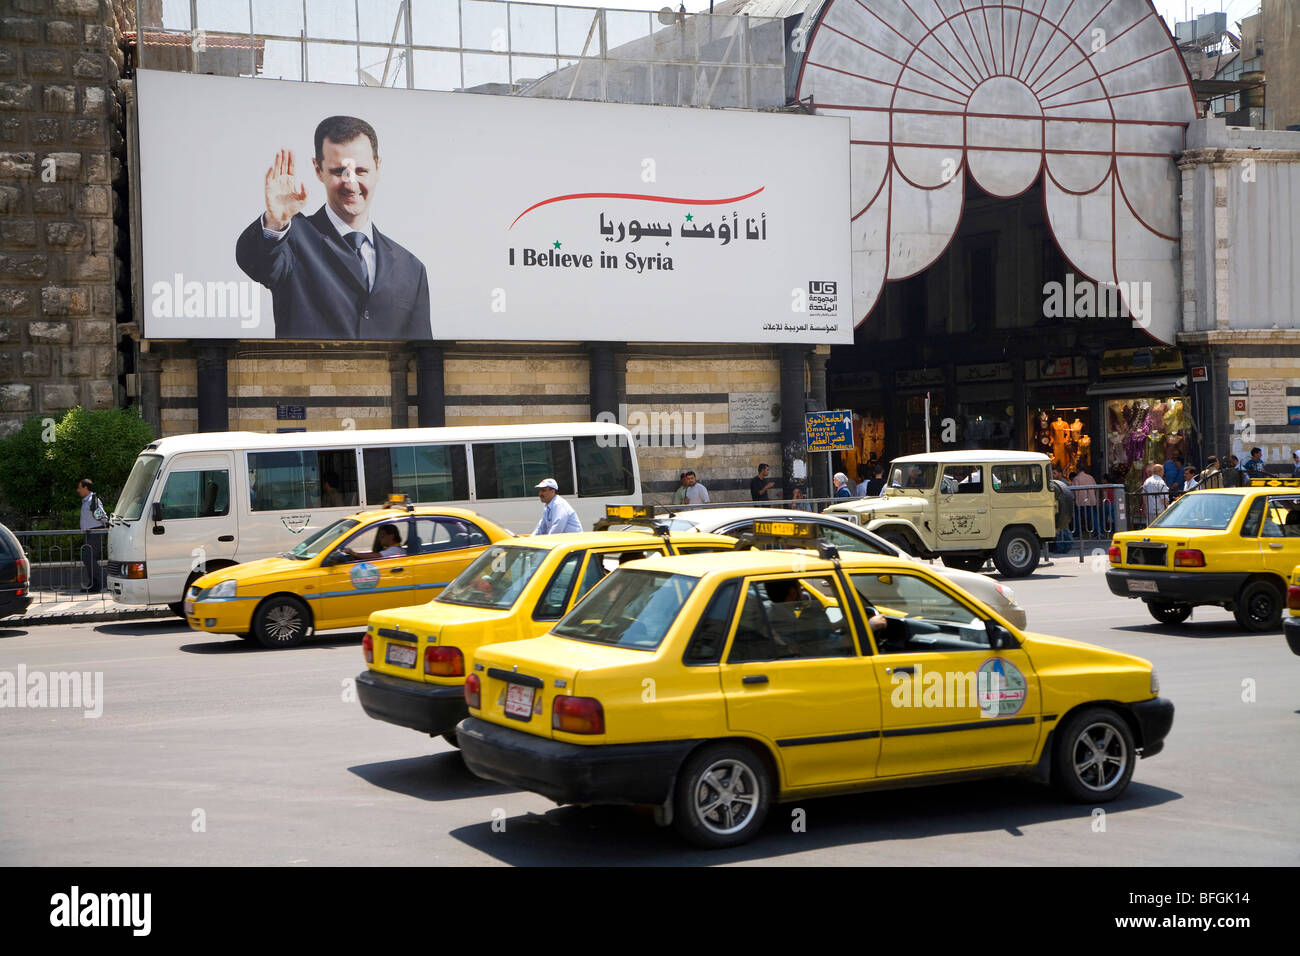 Poster with Bashar al-Assad smiling and saluting at the entrance of the bazaar, Damascus, Syria, Middle East - Stock Image